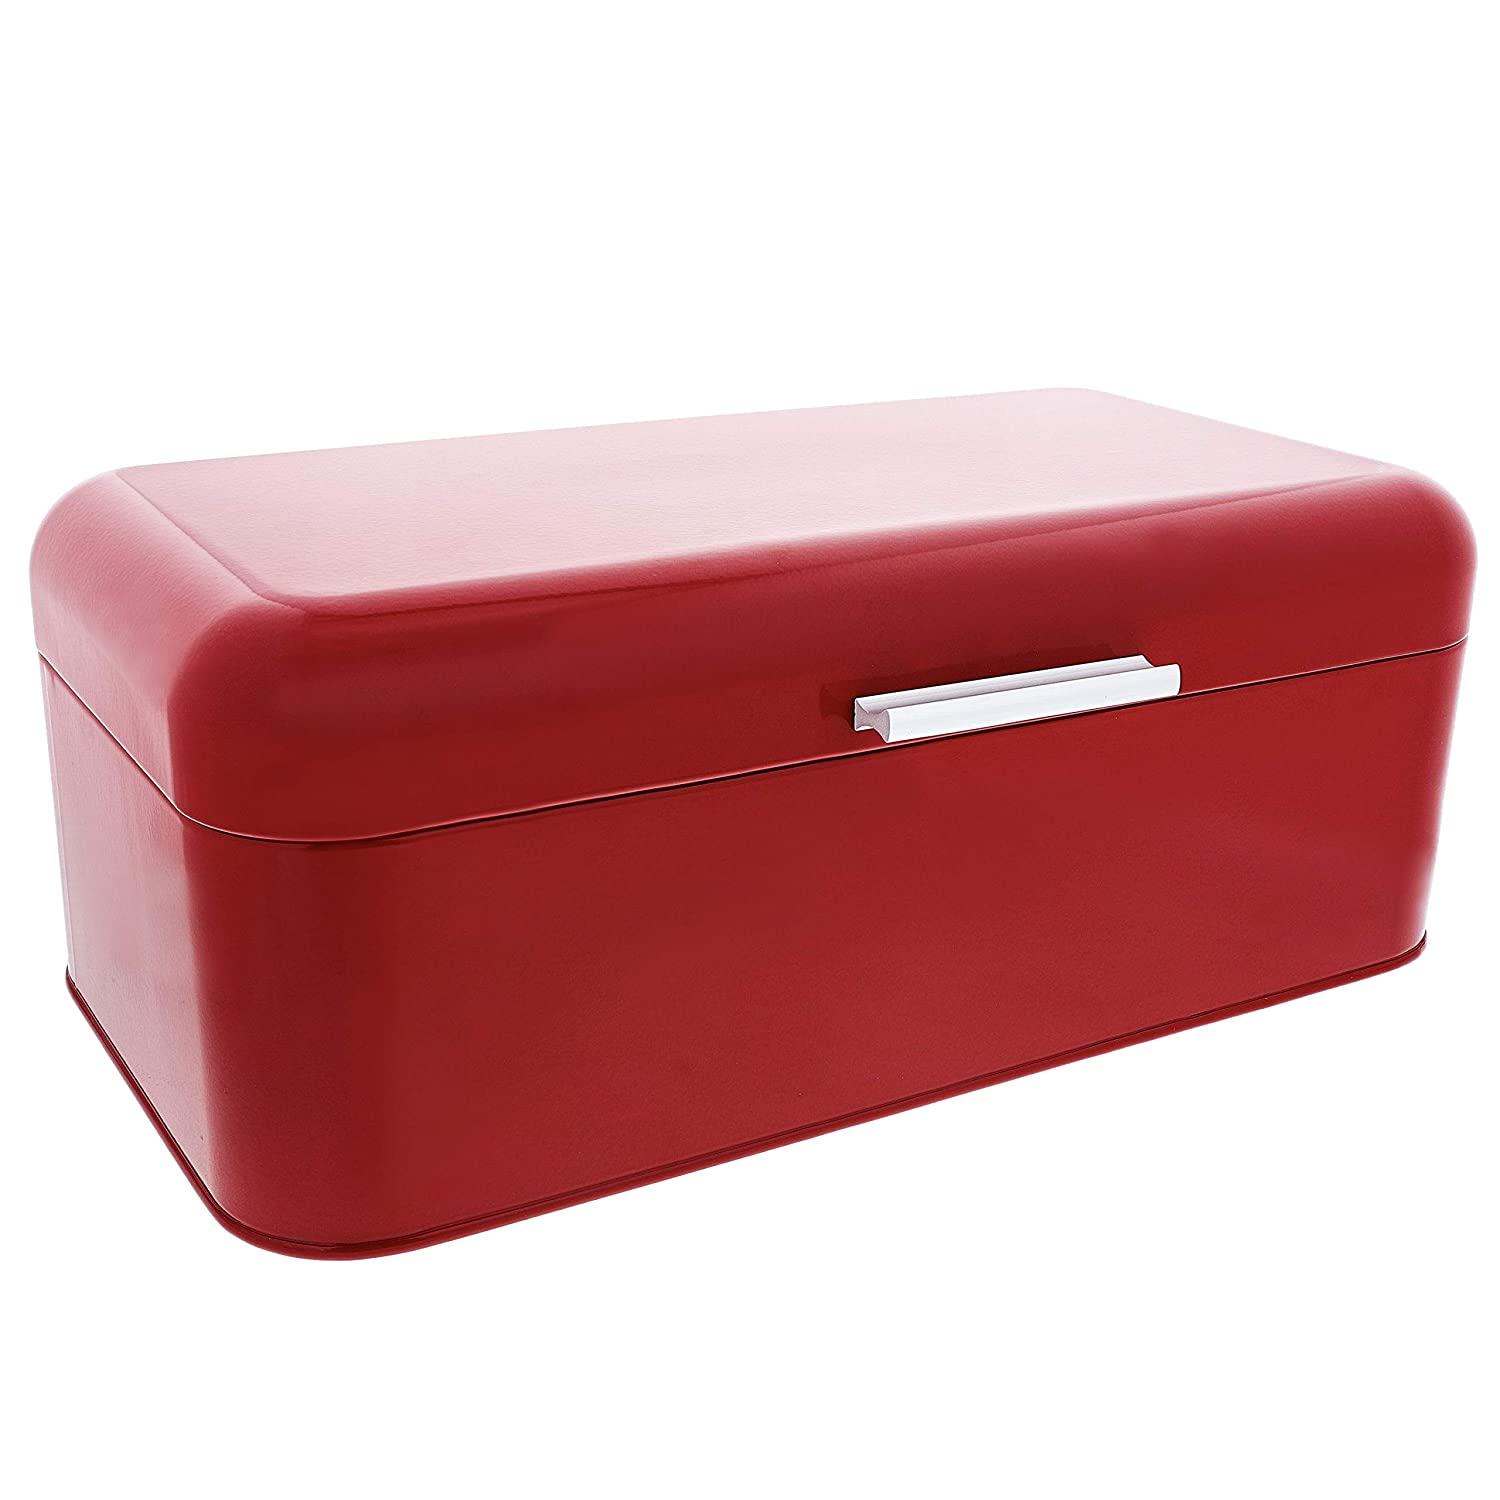 "Large Red Bread Box - For Kitchen Counter Storage - Bread Bin for Loaves, Bagels, Chips, More: 16.5"" x 8.9"" x 6.5"" 